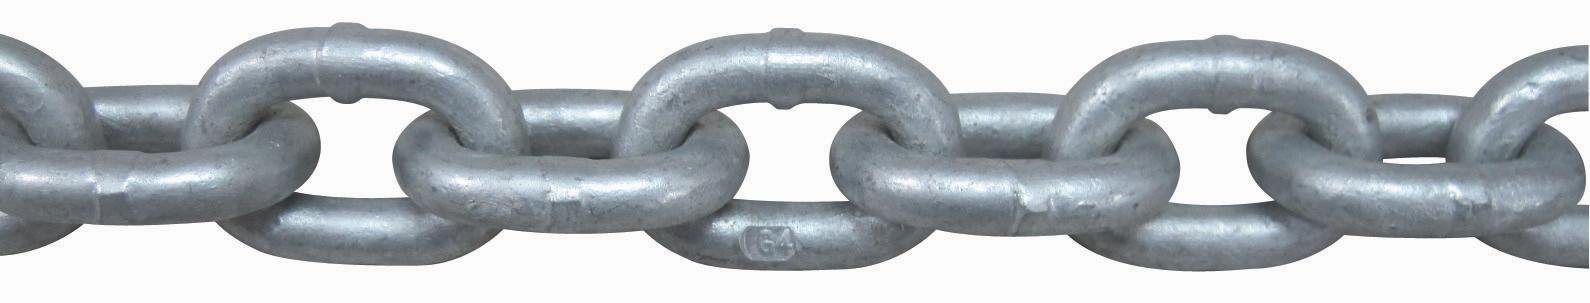 1/4'' x 50' Hot Dipped Galvanzied ISO G4 Windlass Anchor Chain by HRD Marine